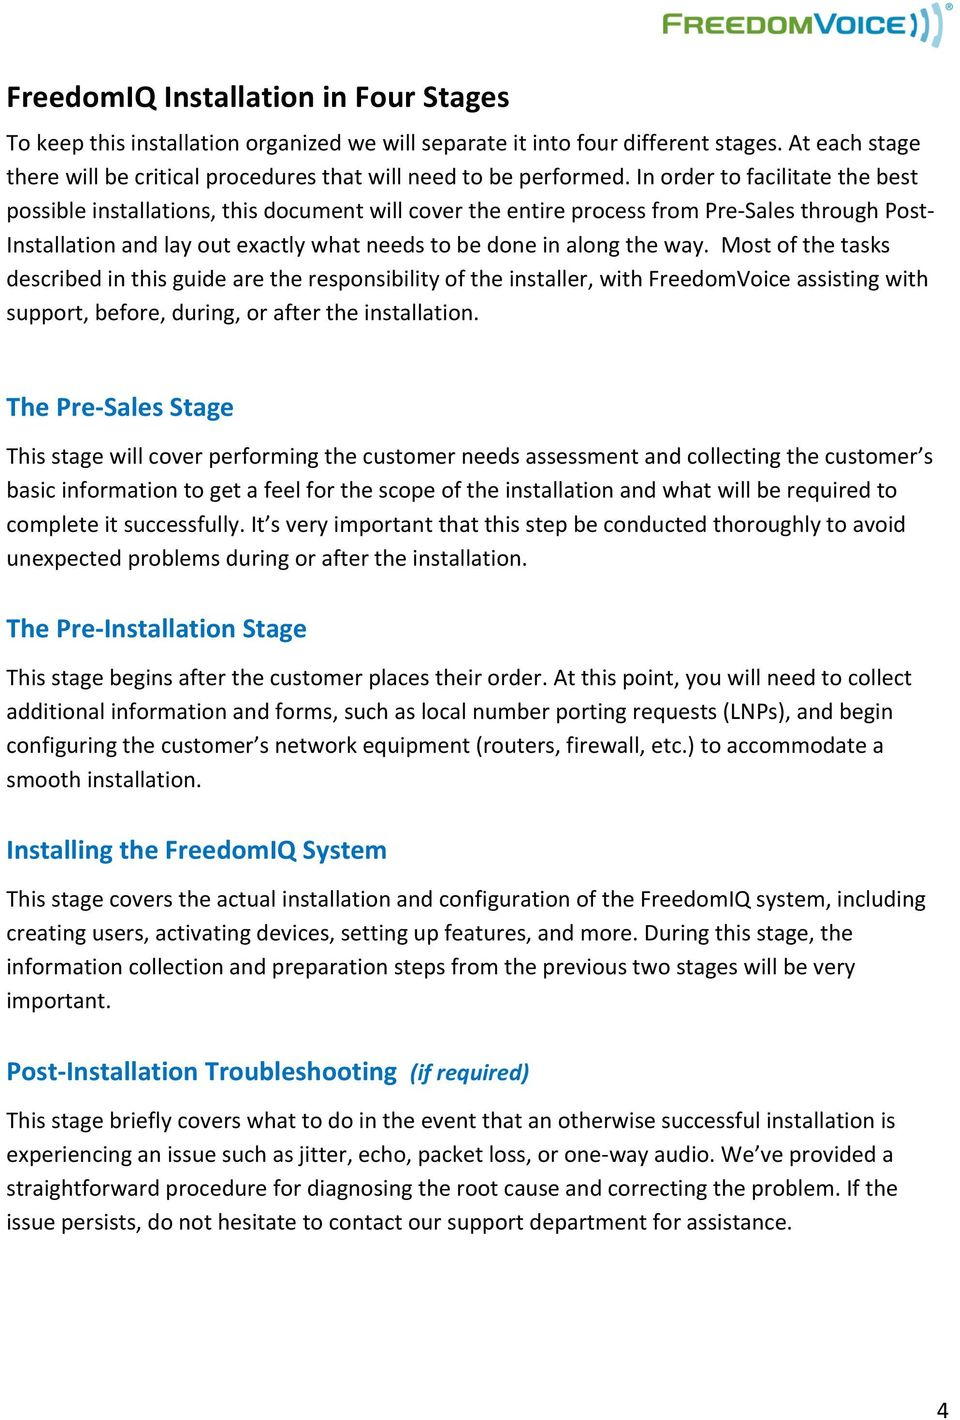 In order to facilitate the best possible installations, this document will cover the entire process from Pre- Sales through Post- Installation and lay out exactly what needs to be done in along the